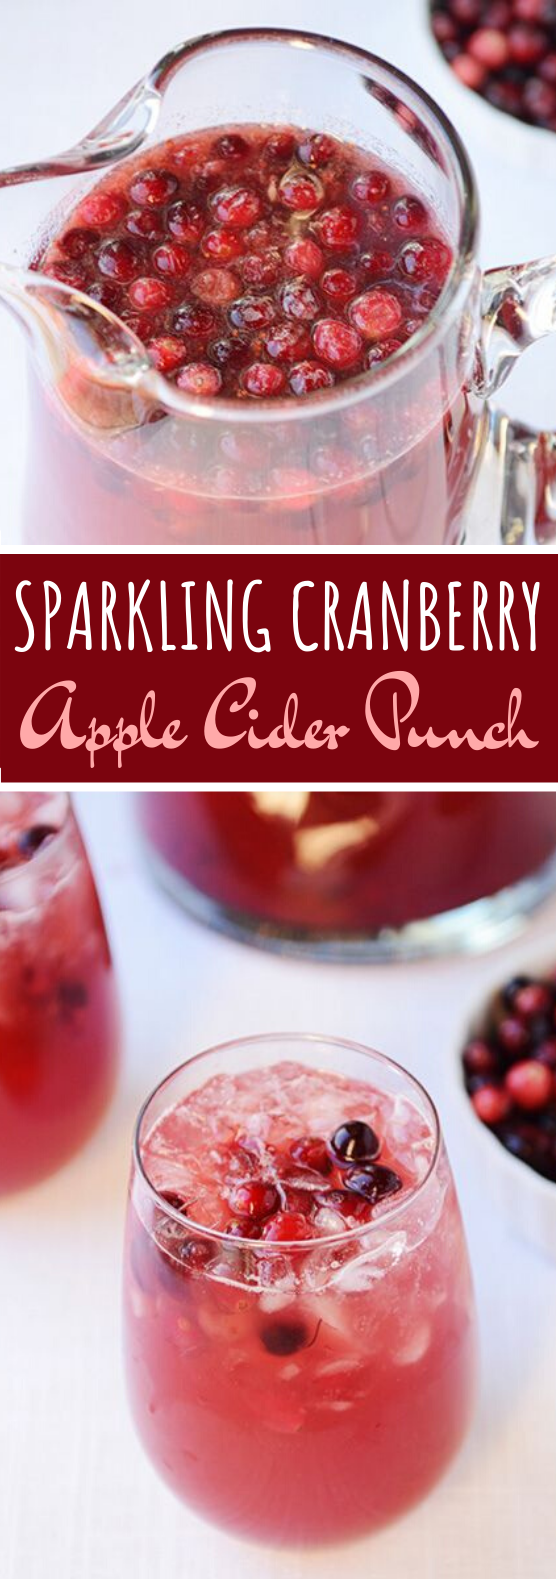 Sparkling Cranberry Apple Cider Punch #drinks #punch #party #nonalcohol #christmas